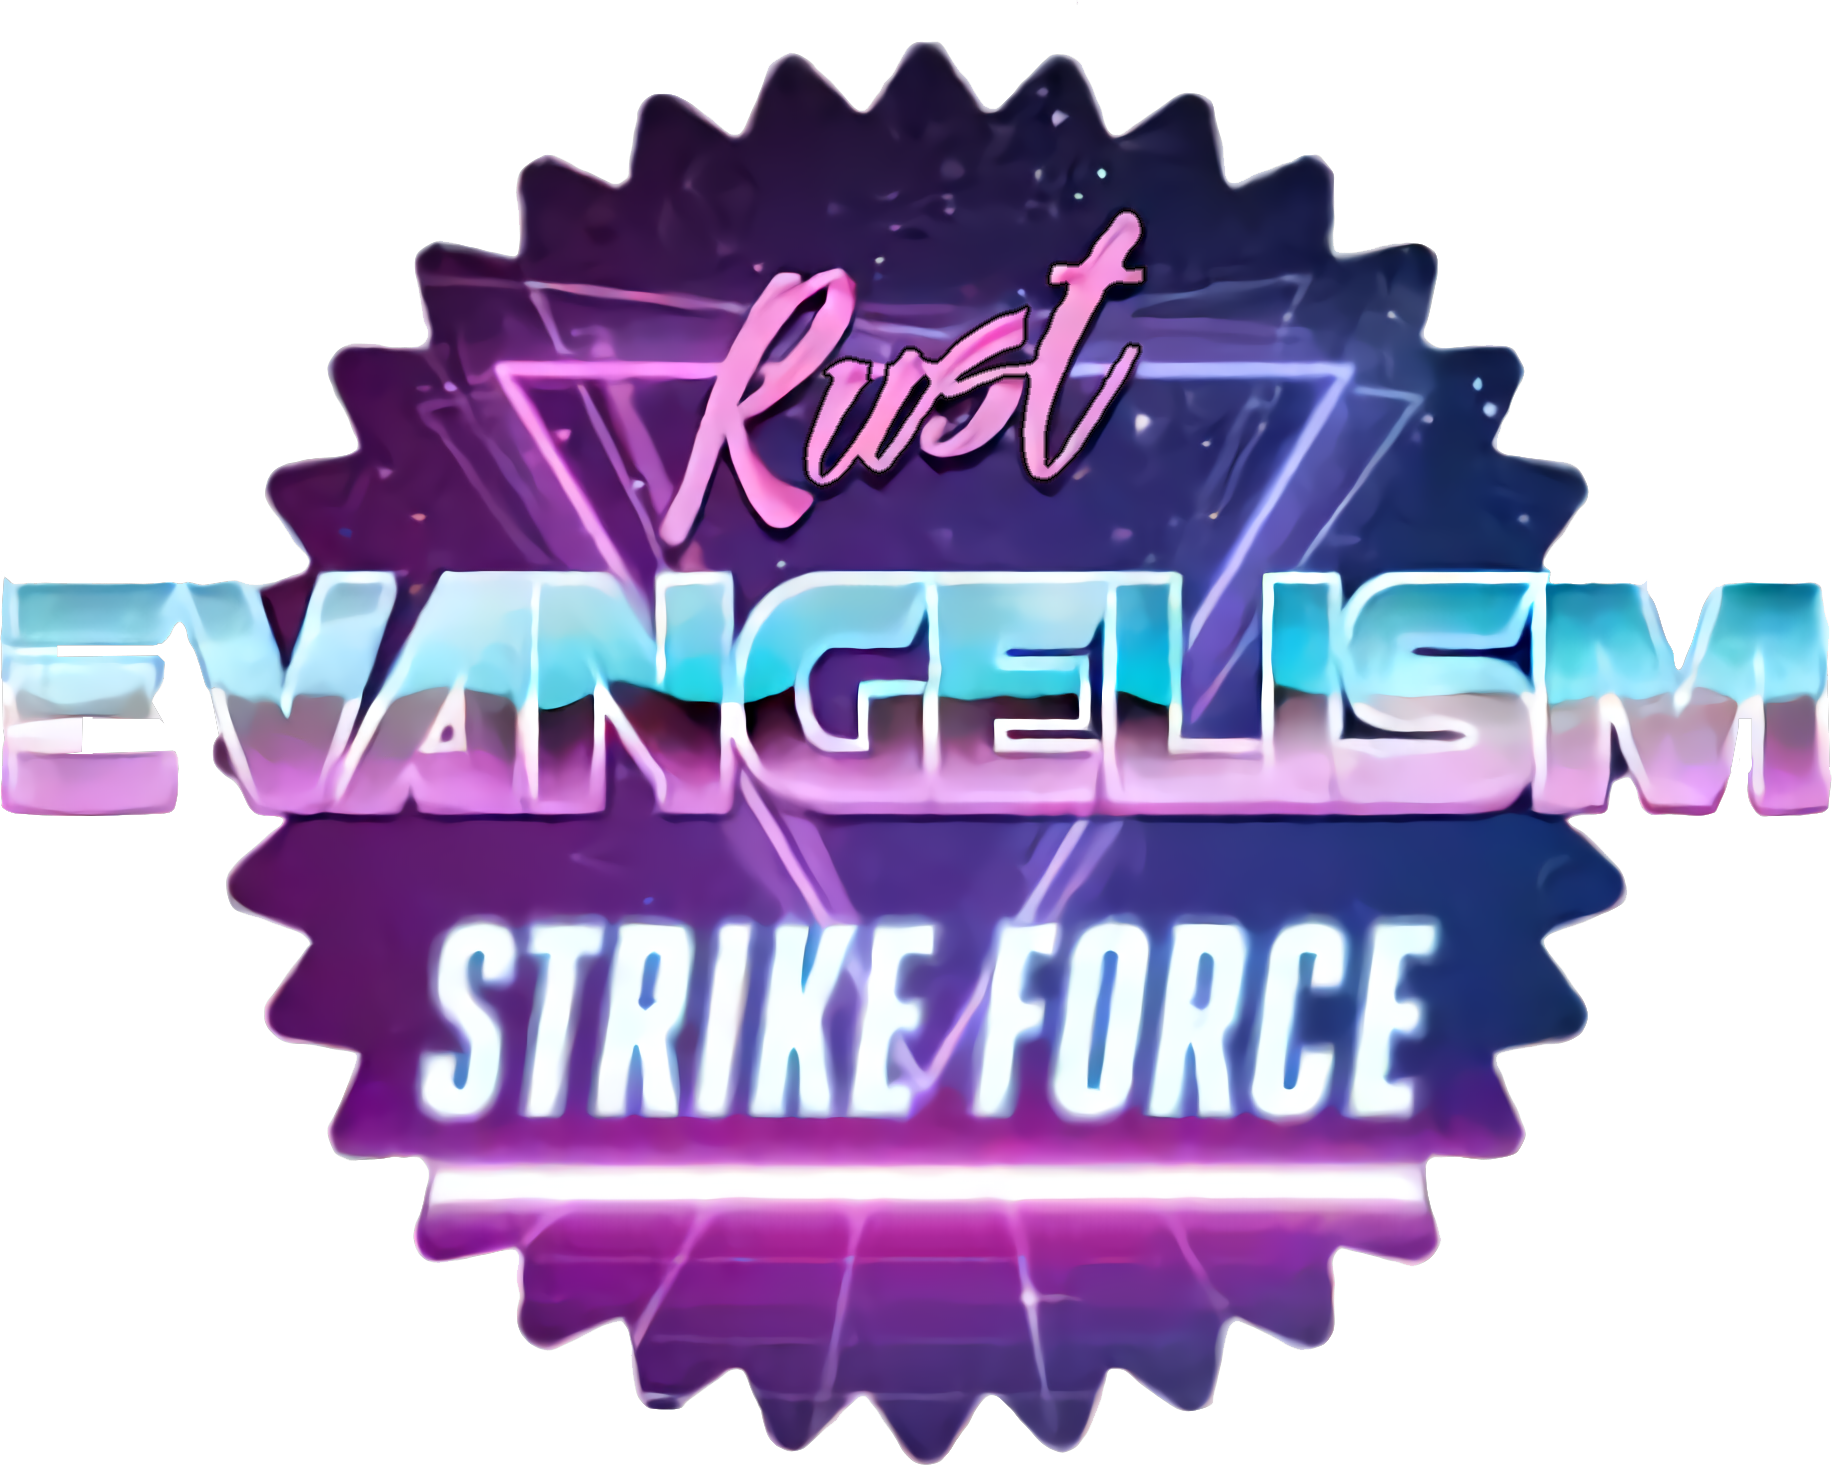 Rust Evangelism Strike Force logo